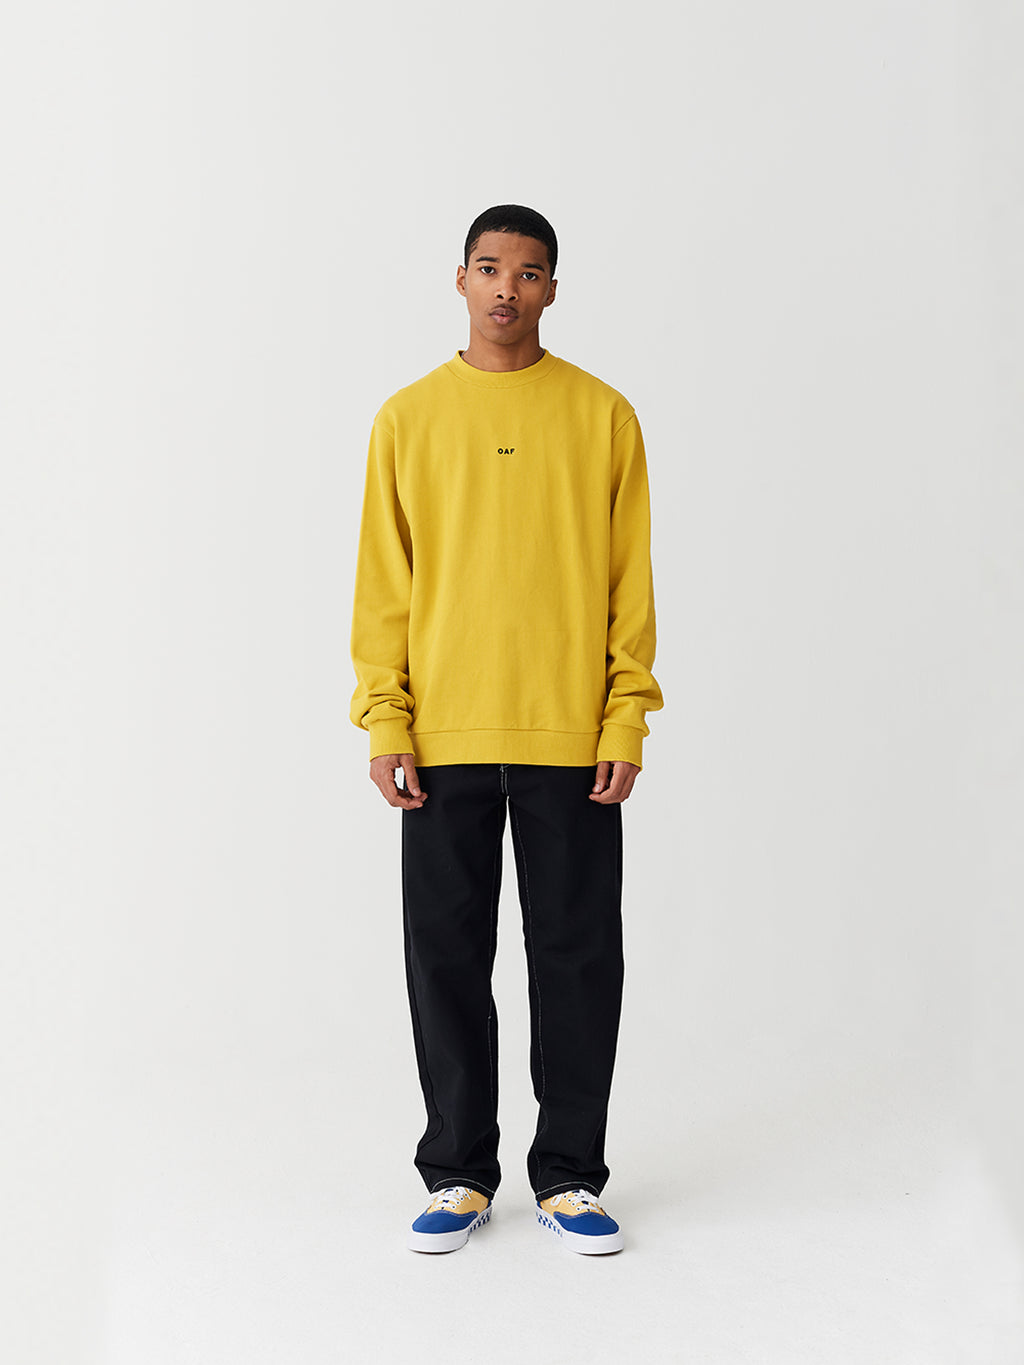 Lazy Oaf Mini Oaf Sweatshirt